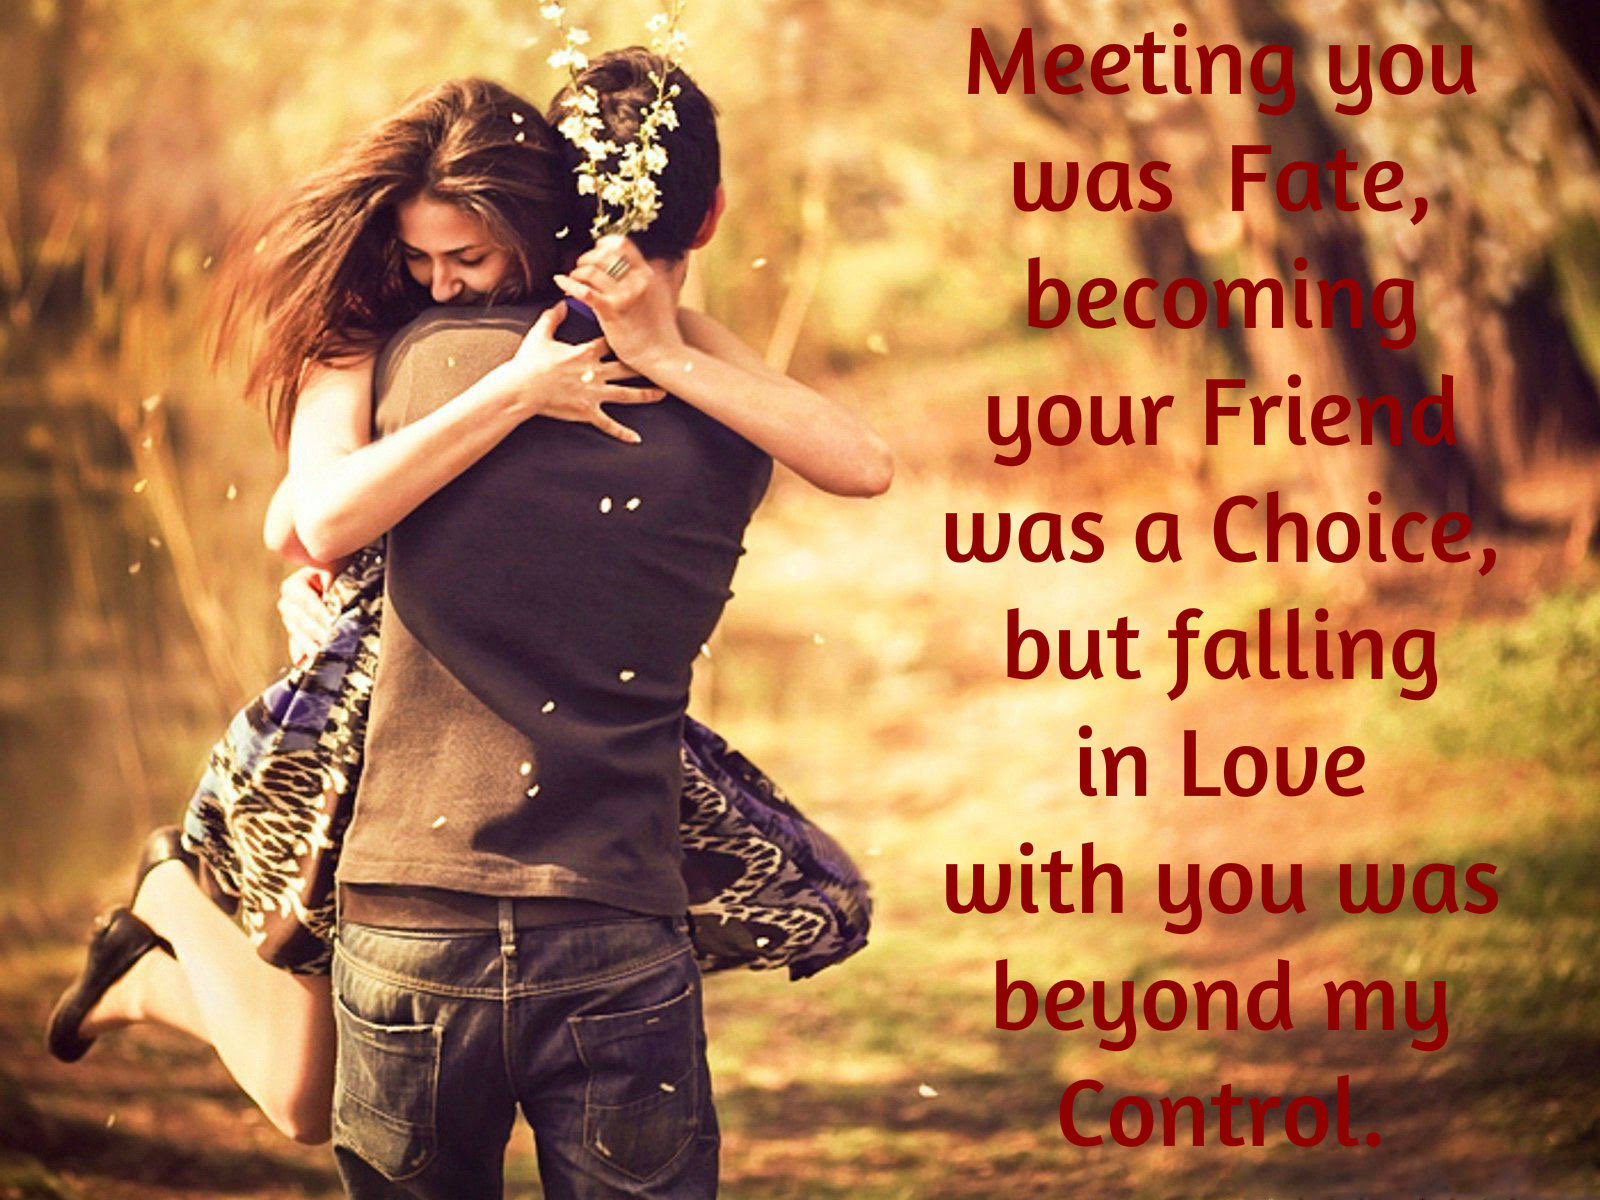 Falling In Love With You Was Beyond My Control Wisdom Quotes Stories